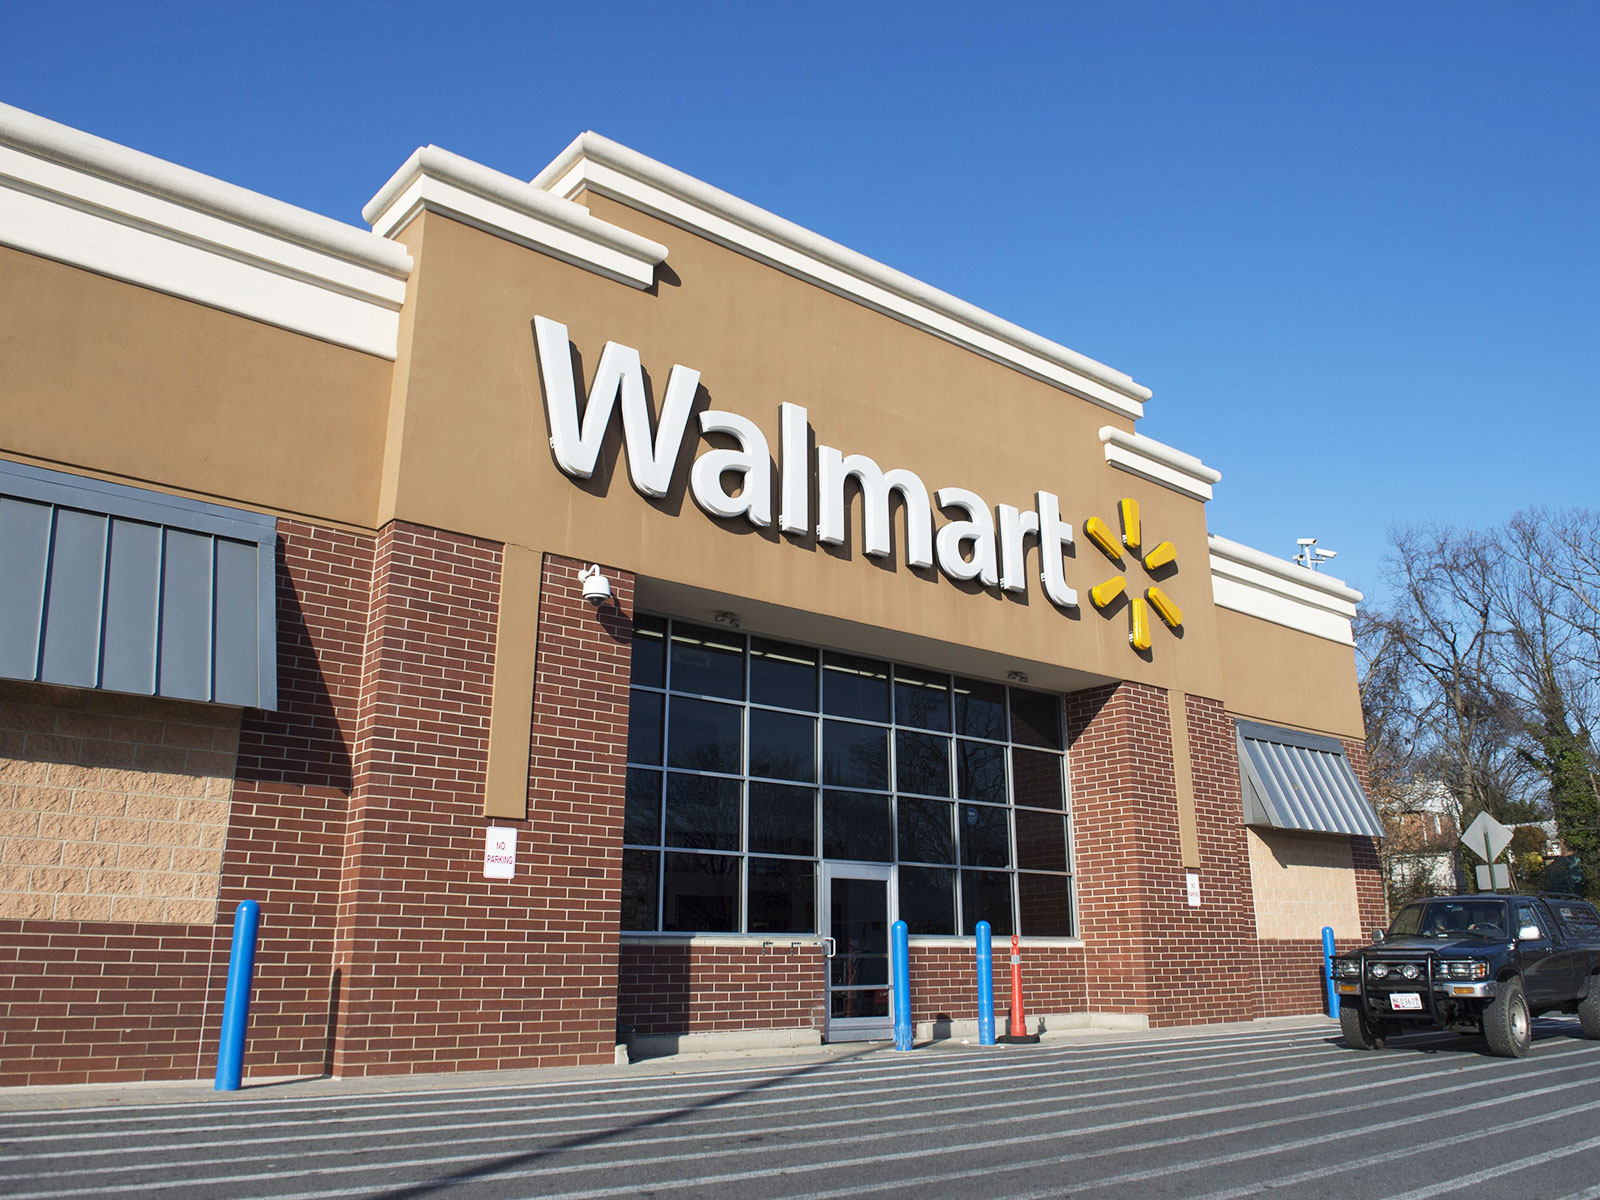 Walmart Expands Home Grocery Delivery To 100 Cities